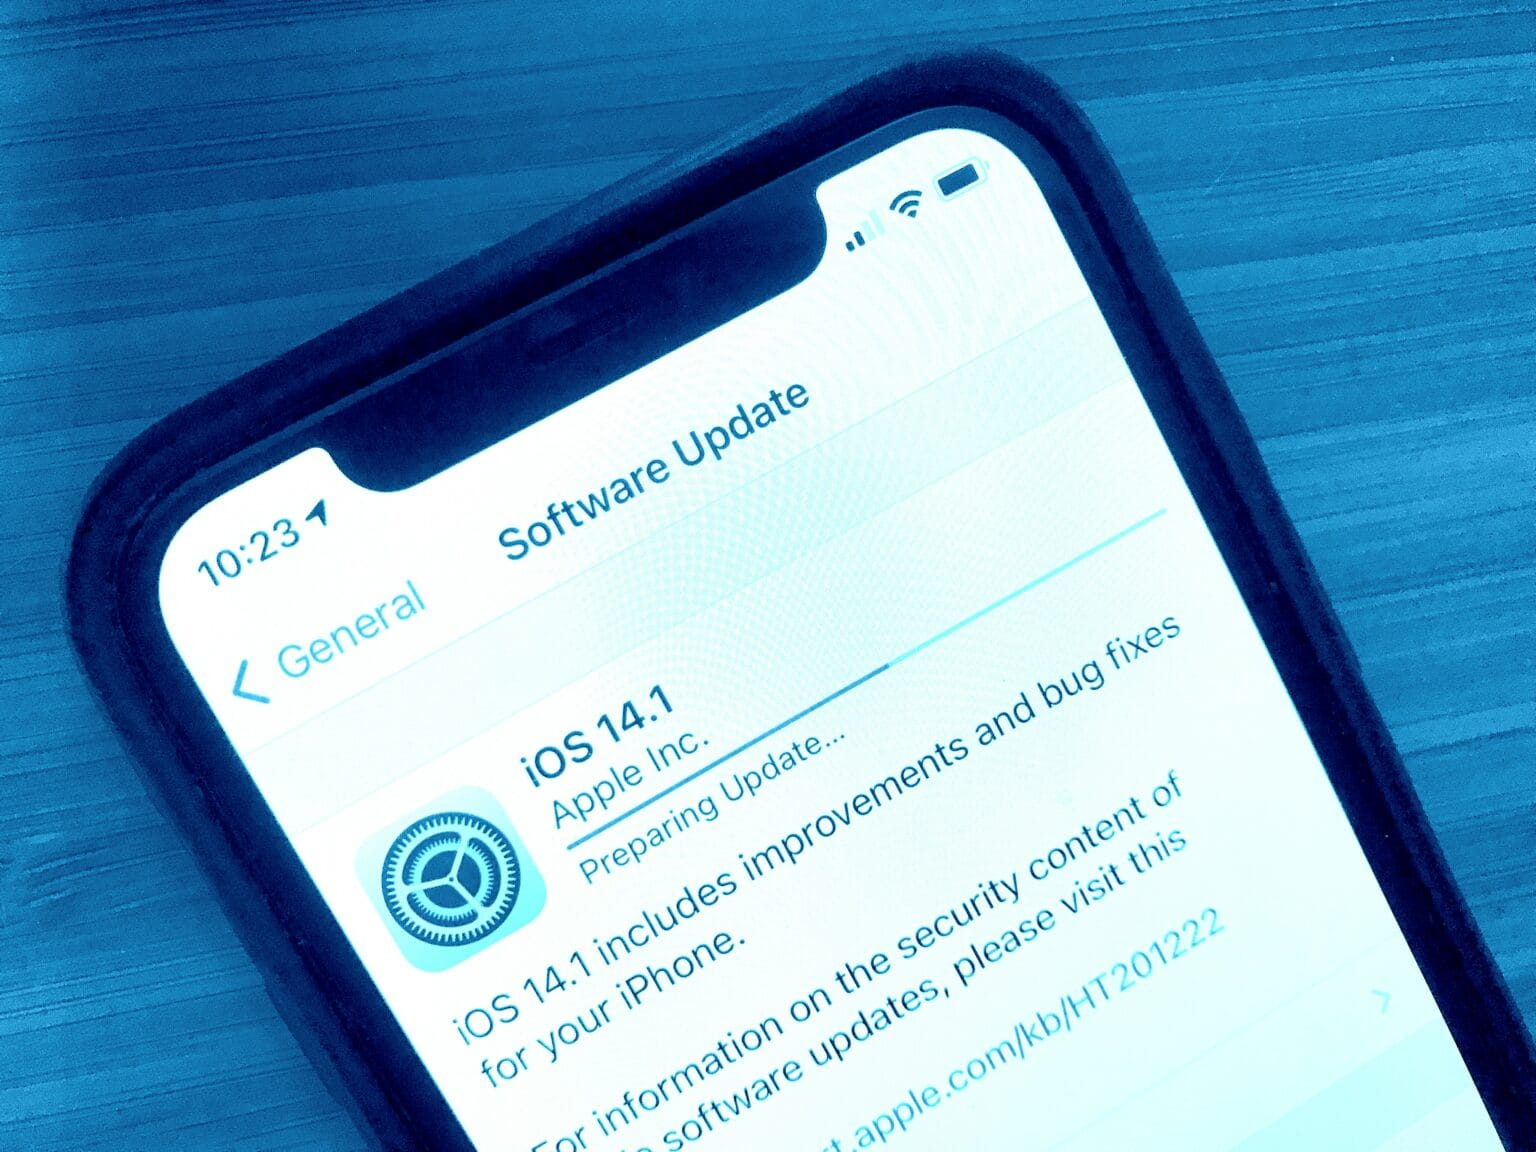 iOS 14.1 and iPadOS 14.1 arrive: Here come the bug fixes.